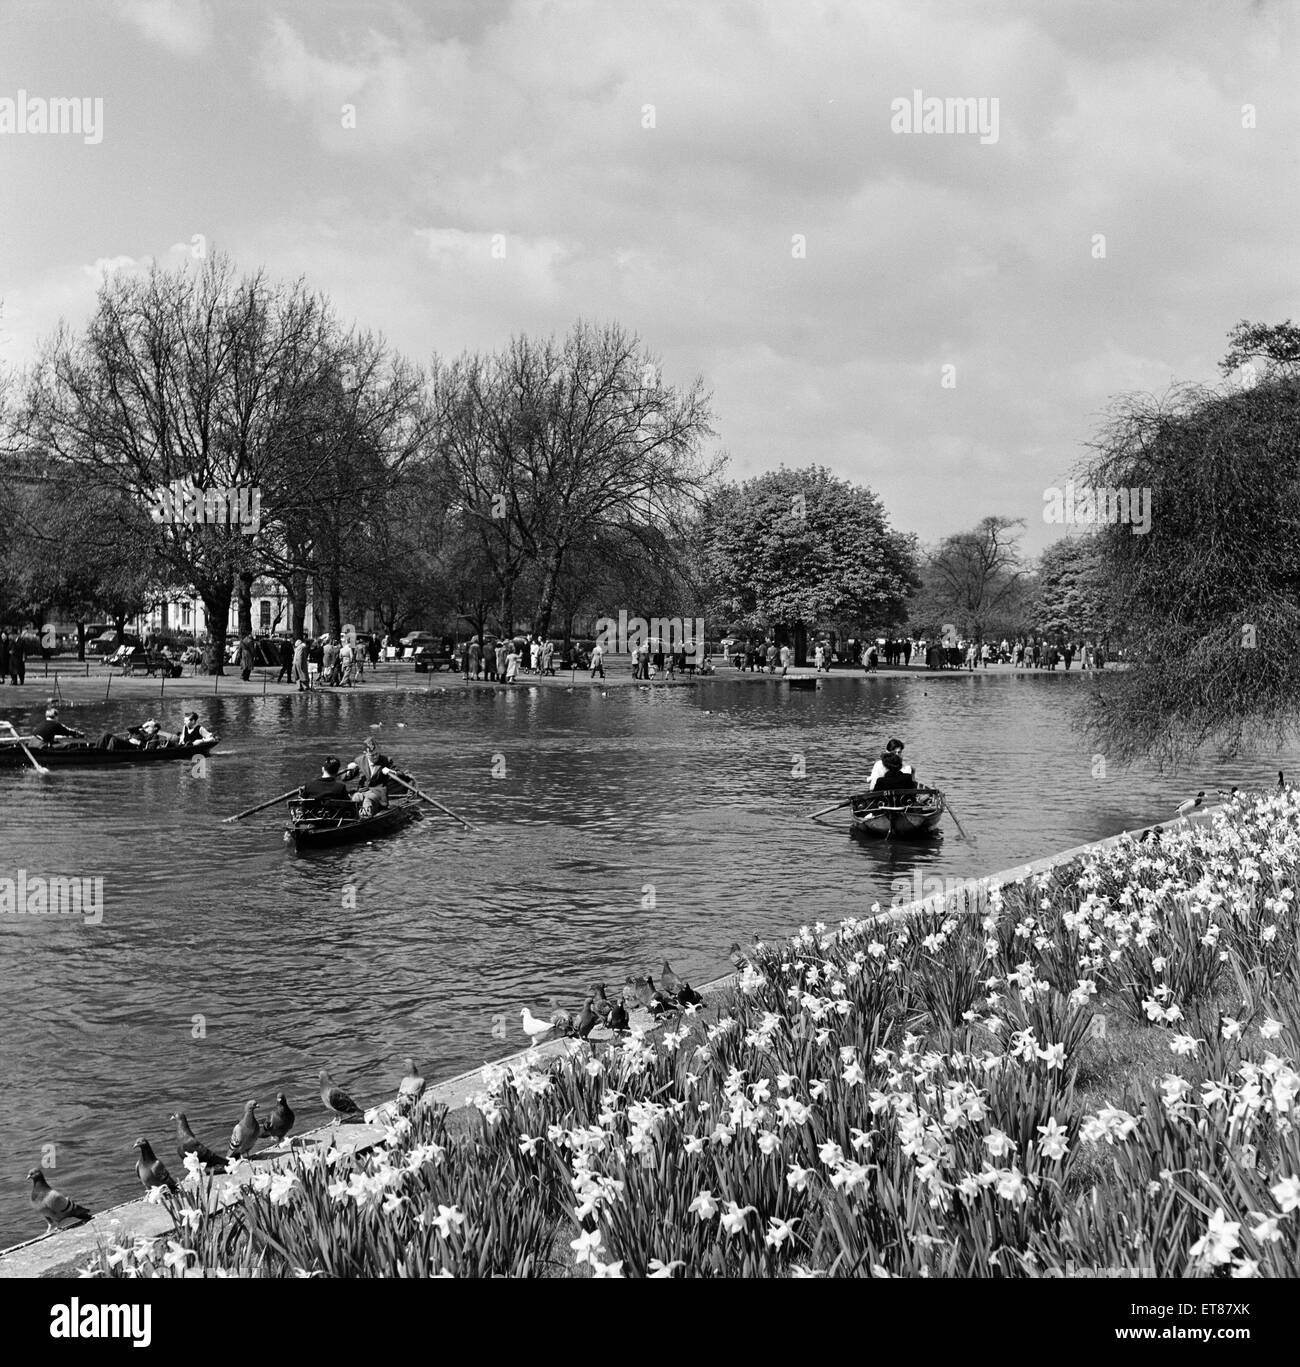 People enjoying a day out in Regents Park, London. 23rd April 1954. Stock Photo